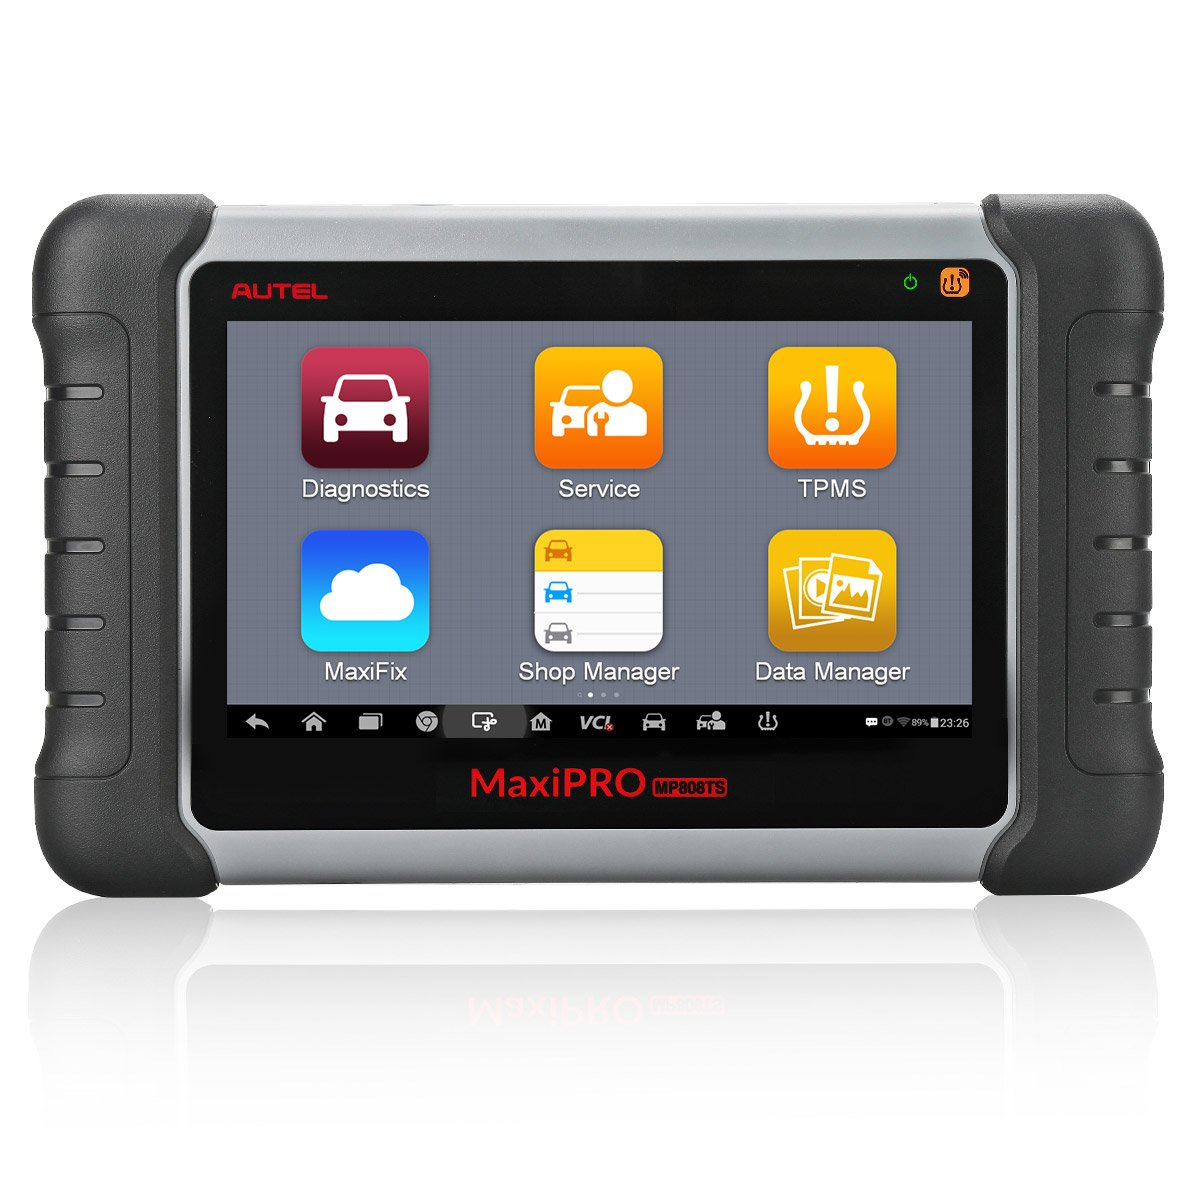 Autel MaxiPRO MP808TS Automotive Diagnostic Tool OBD2 Scanner Professional Complete TPMS Service and Diagnostic Functions with WIFI and Bluetooth